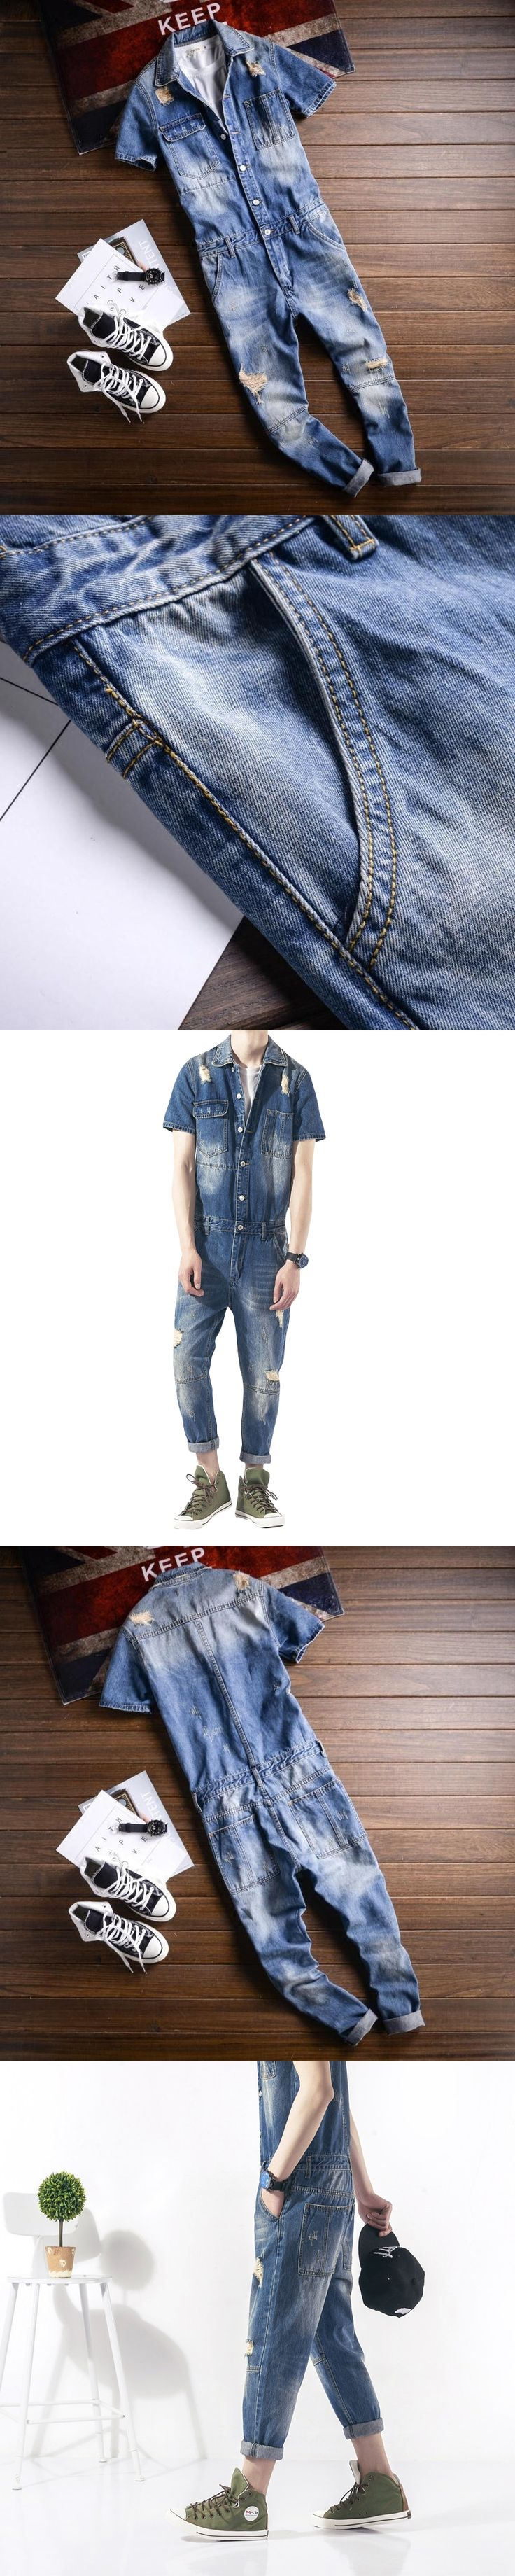 2017 New Men's Short Sleeves Denim Overalls Men Casual Blue Jeans Jumpsuits For Men With Holes Denim Overalls Size M-XXL